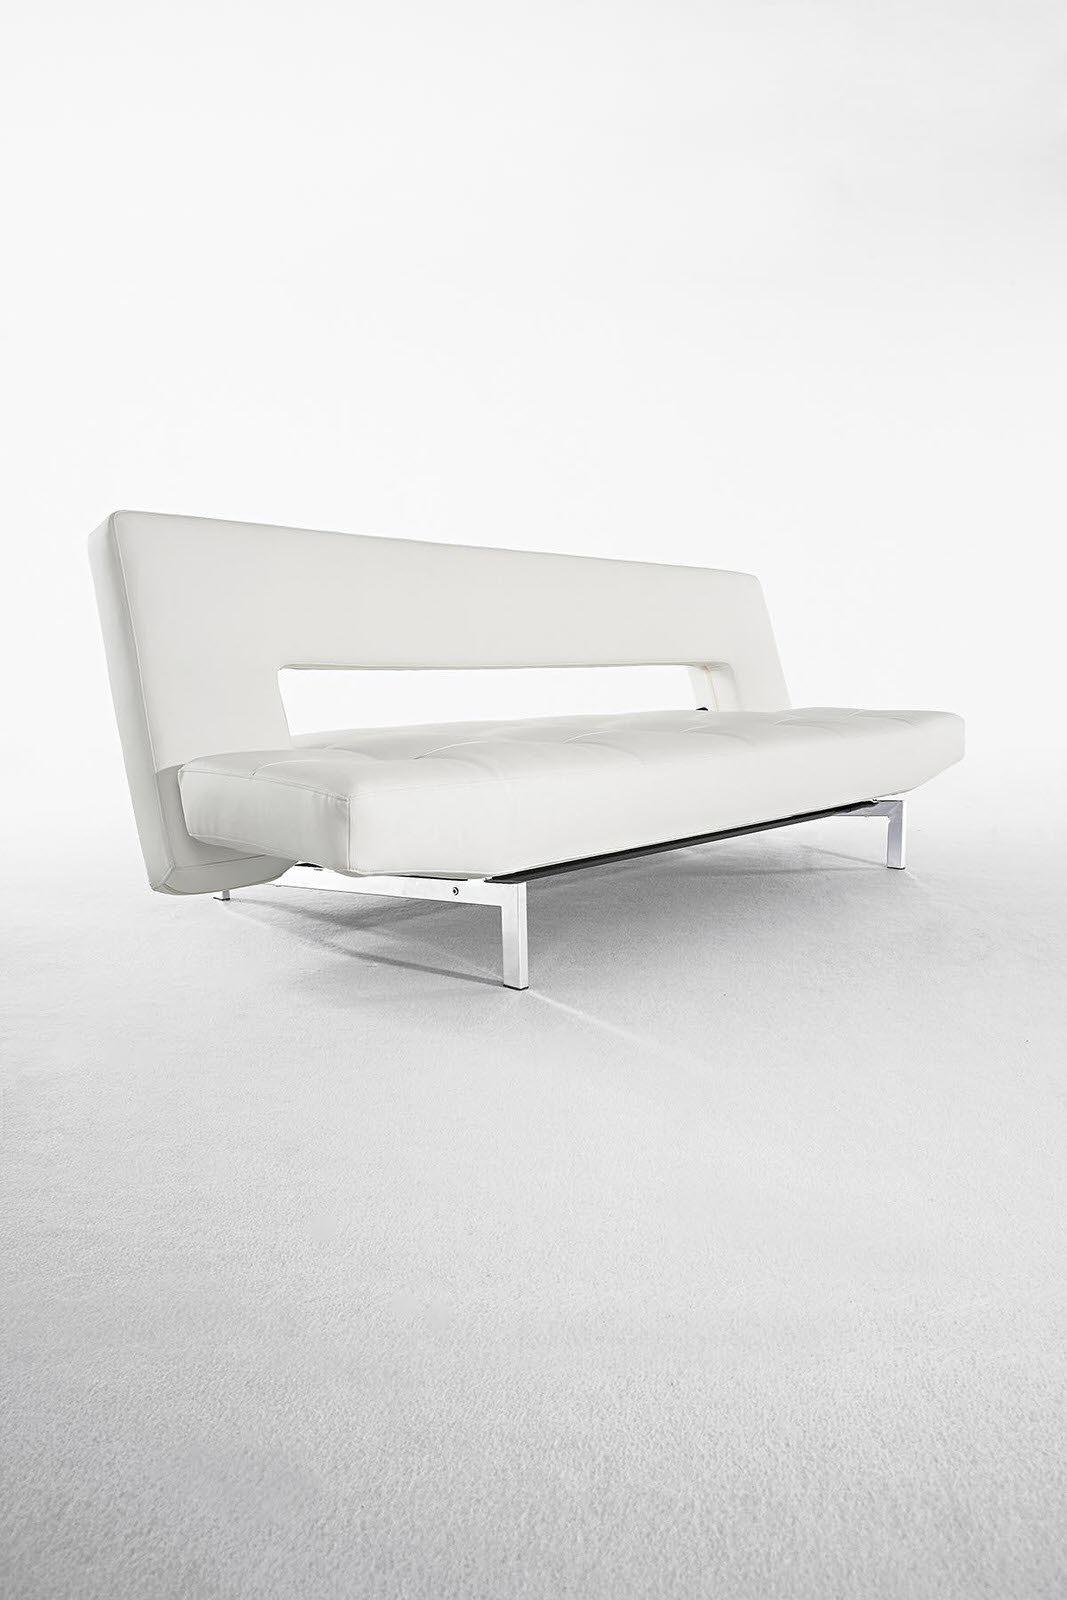 Fine Wing Deluxe Sofa Bed White Leather Textile By Innovation Pdpeps Interior Chair Design Pdpepsorg